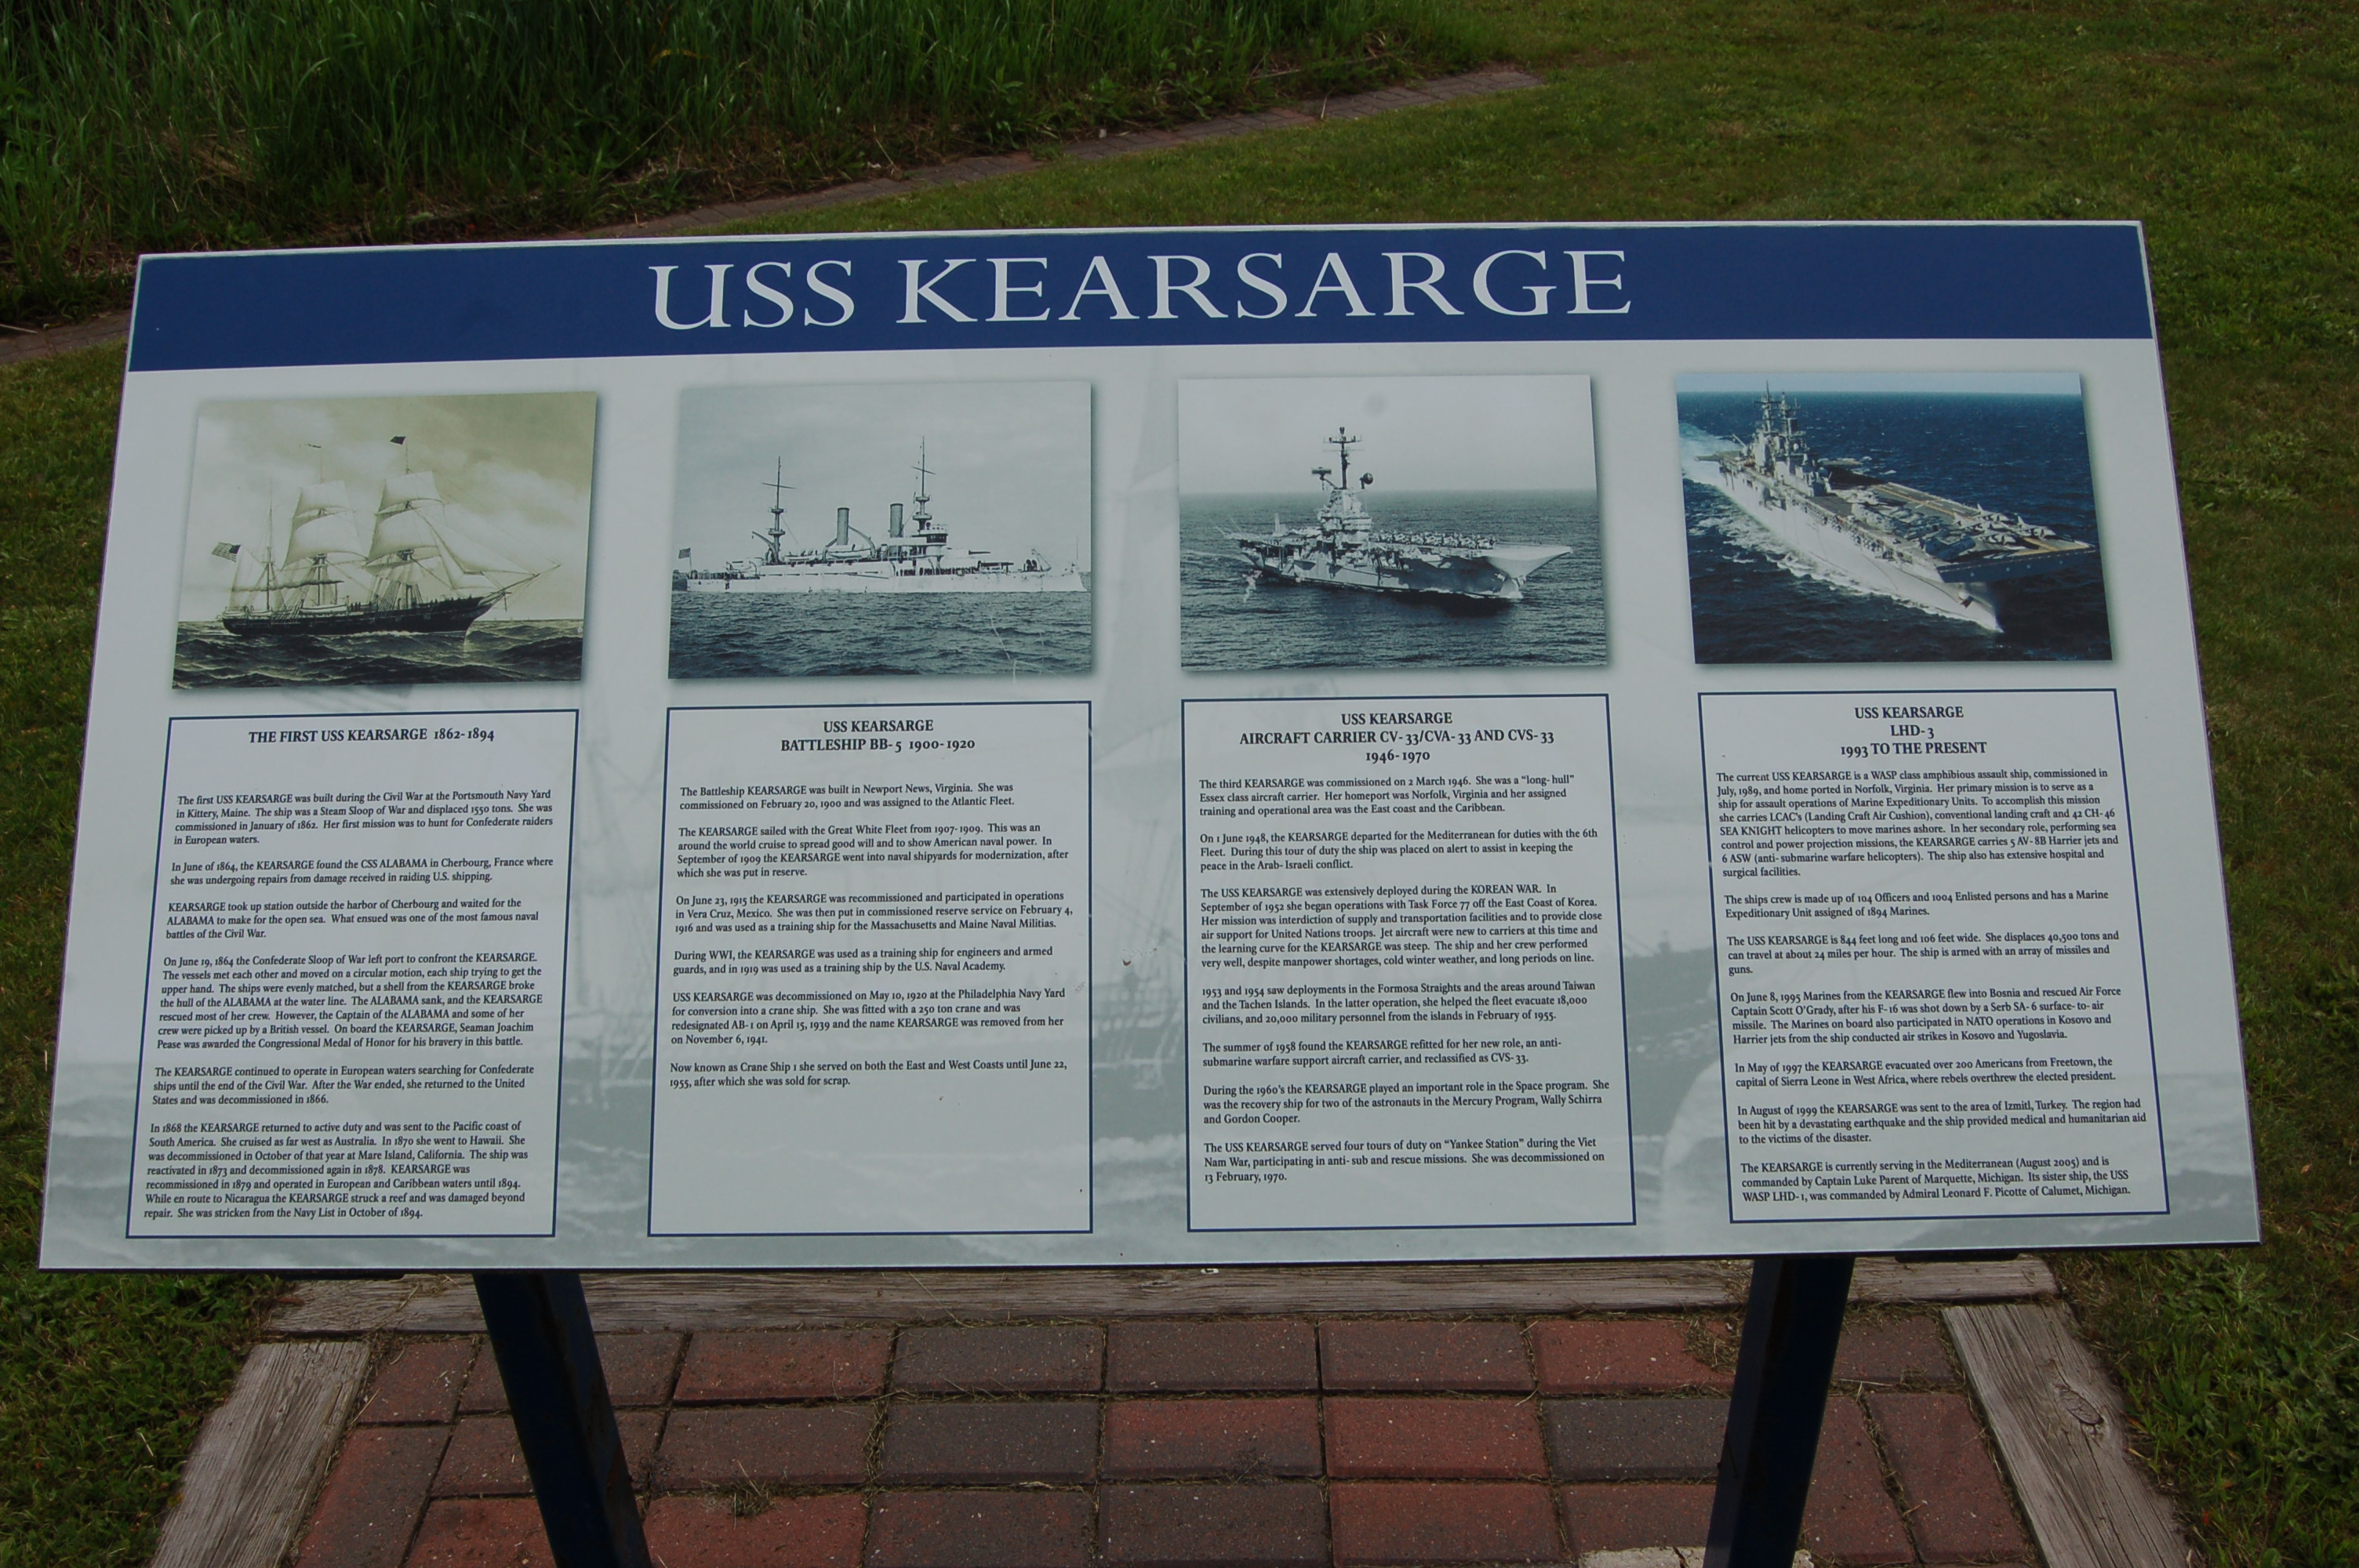 Plague used to show the different vessels throughout naval history that have represented the name Kearsarge.